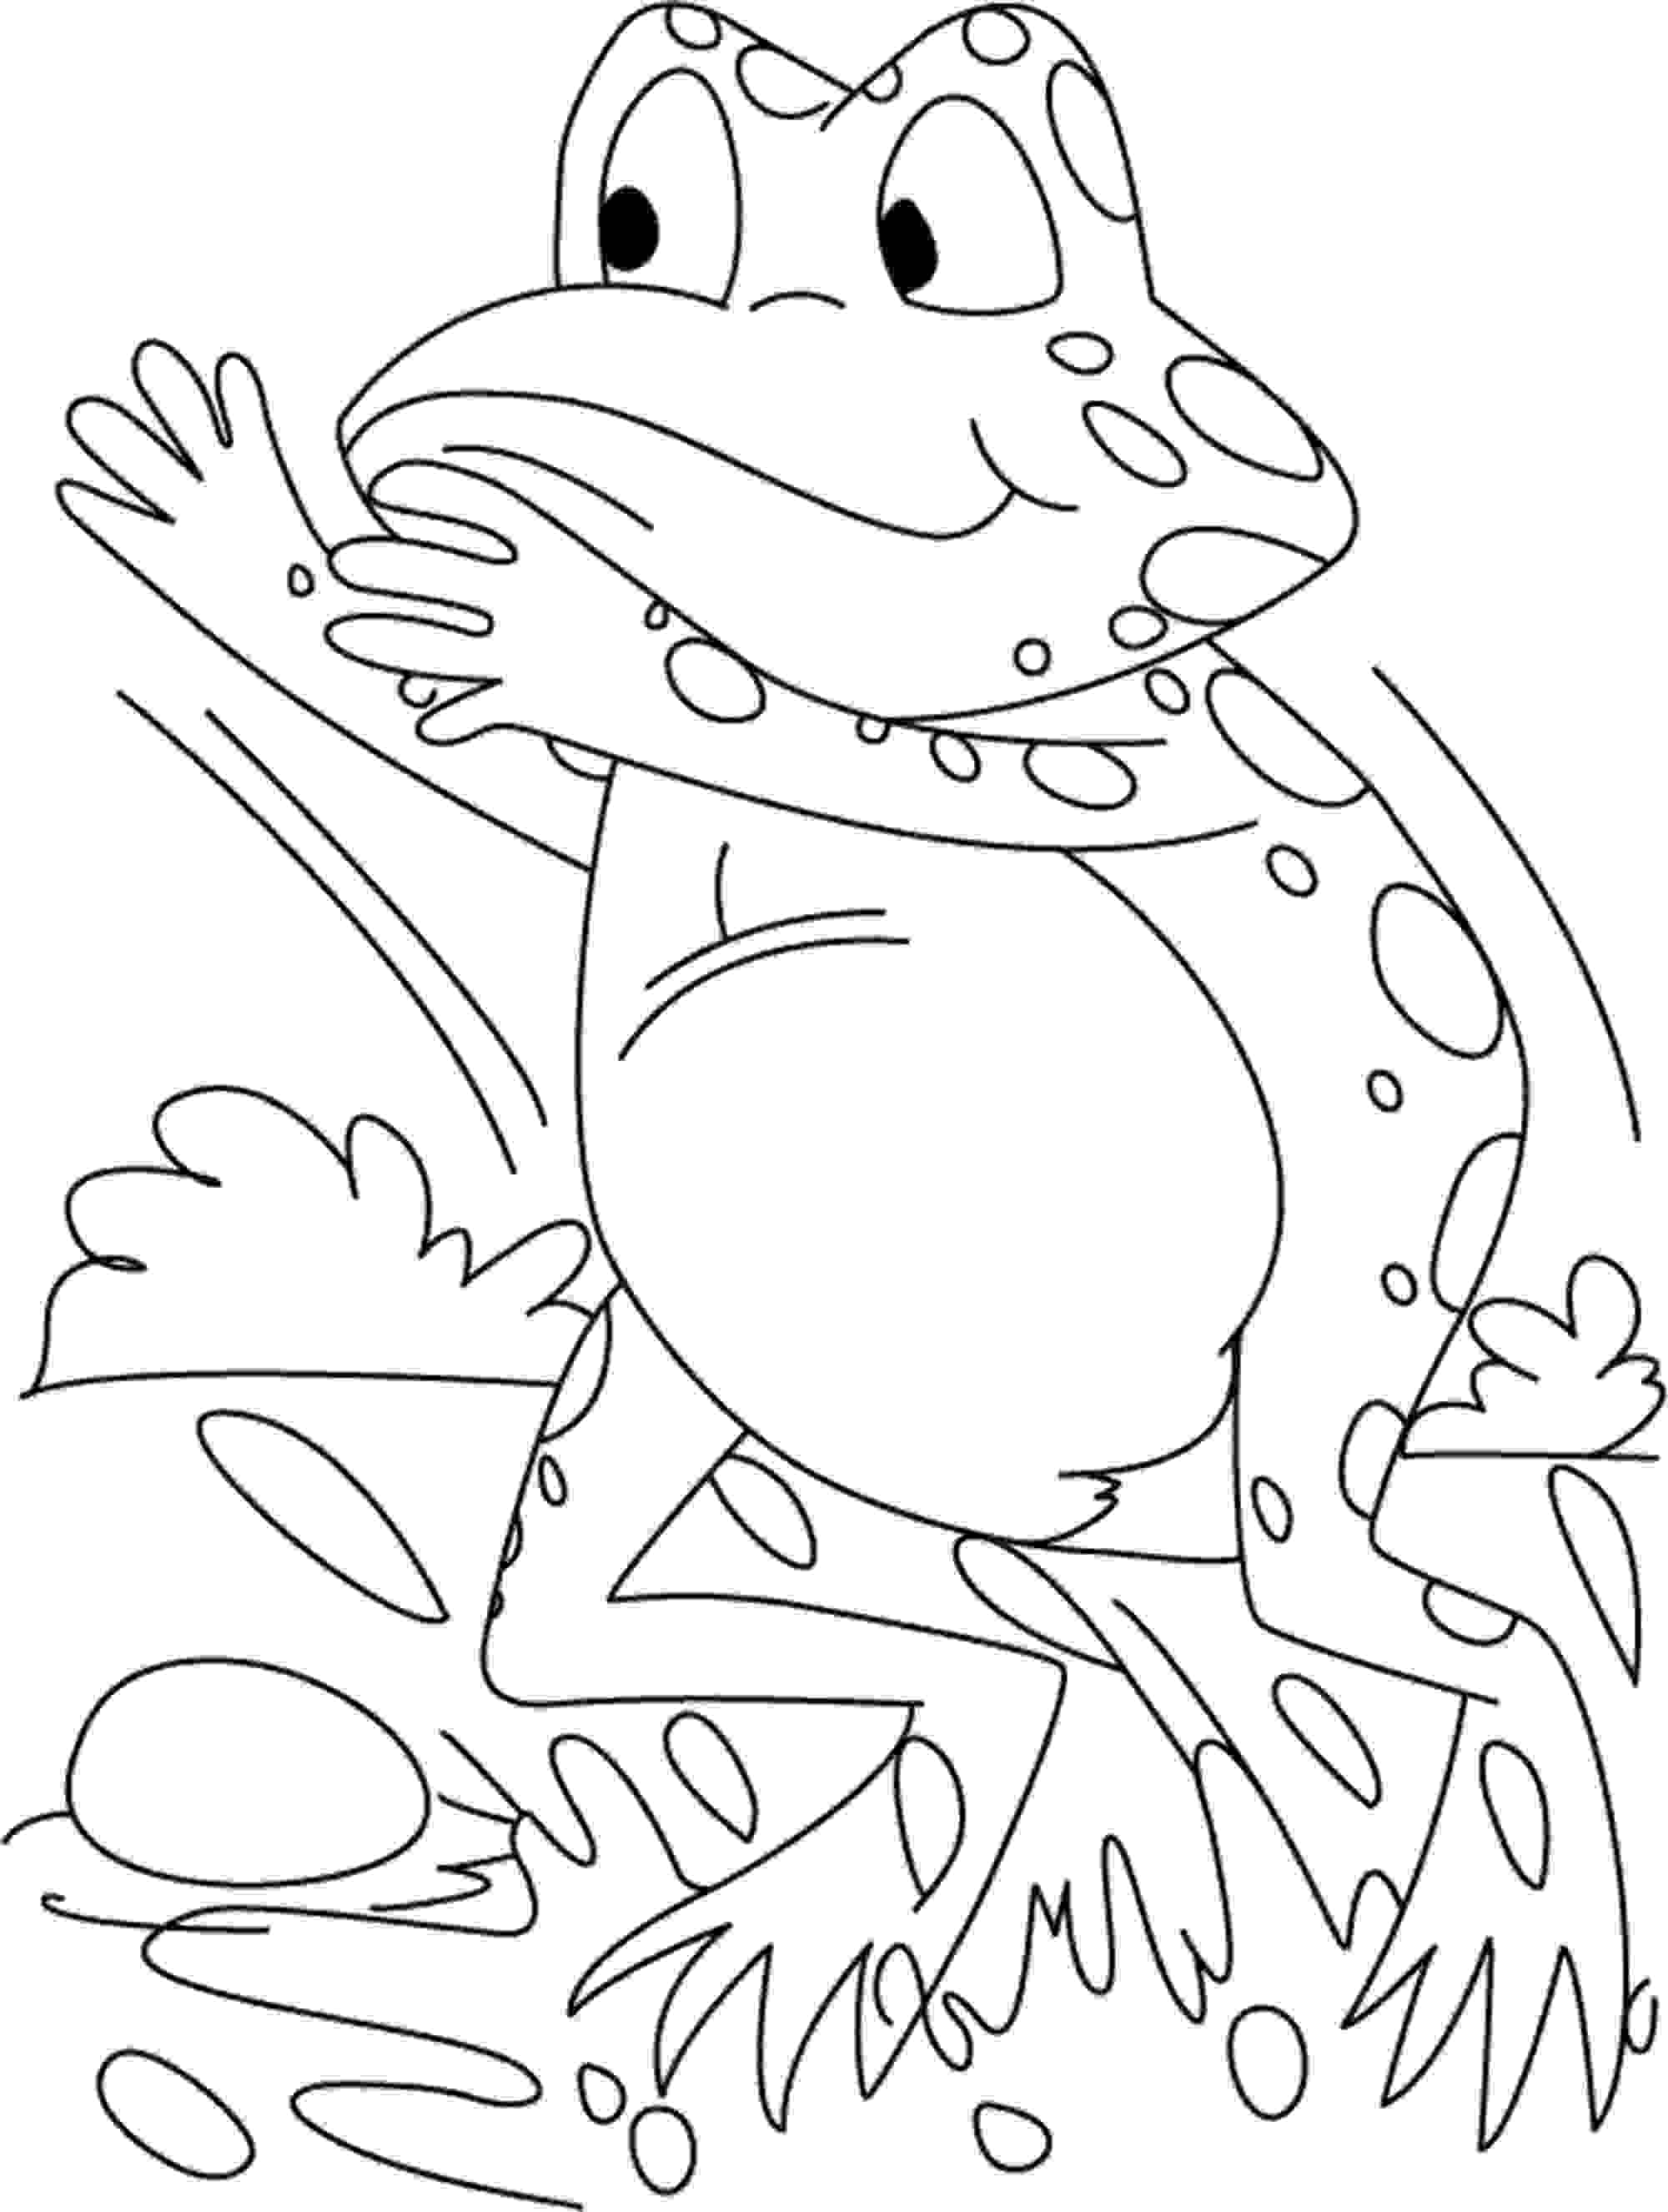 frog coloring book print download frog coloring pages theme for kids frog coloring book